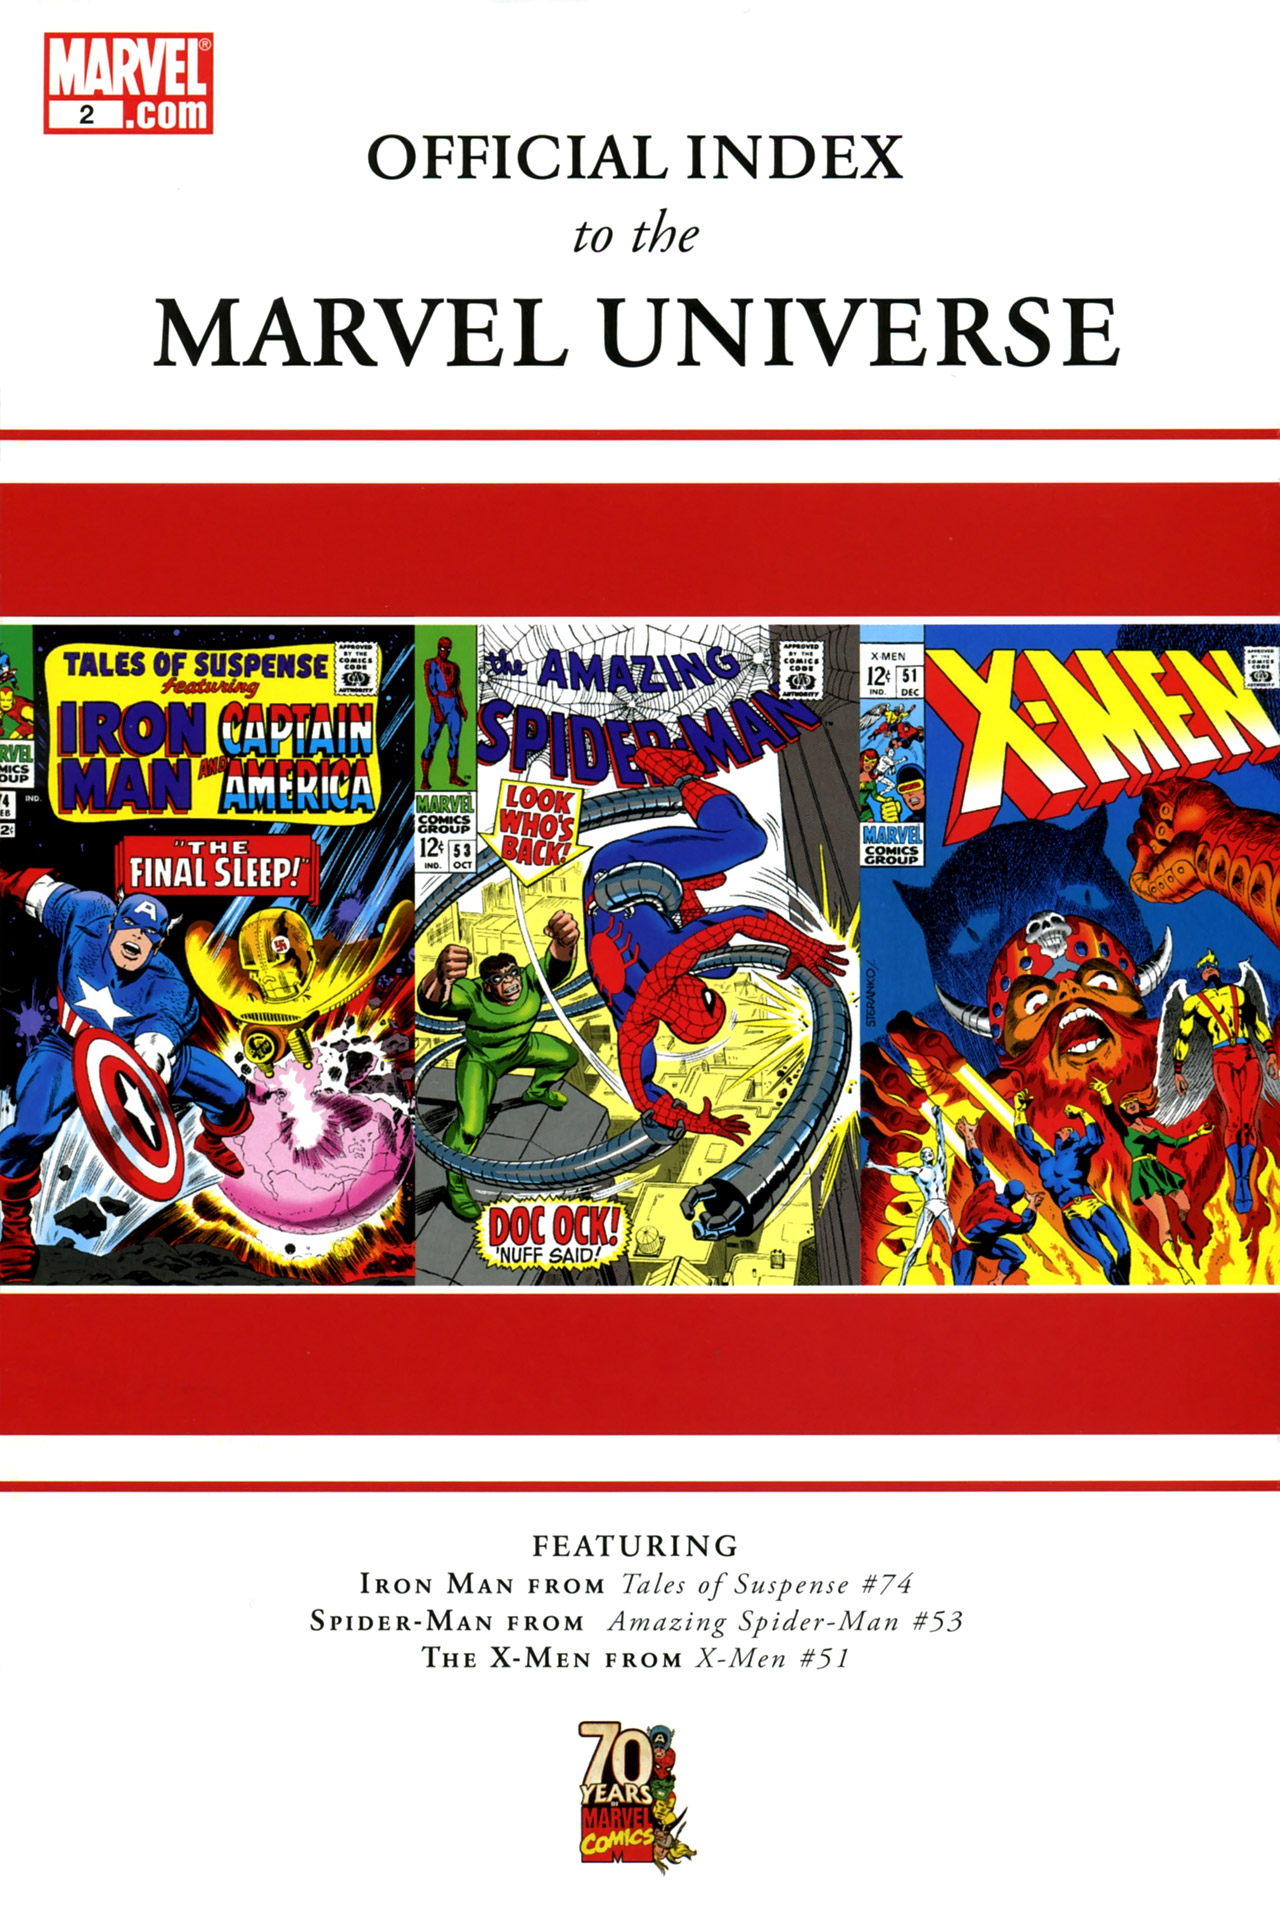 Read online Official Index to the Marvel Universe comic -  Issue #2 - 1